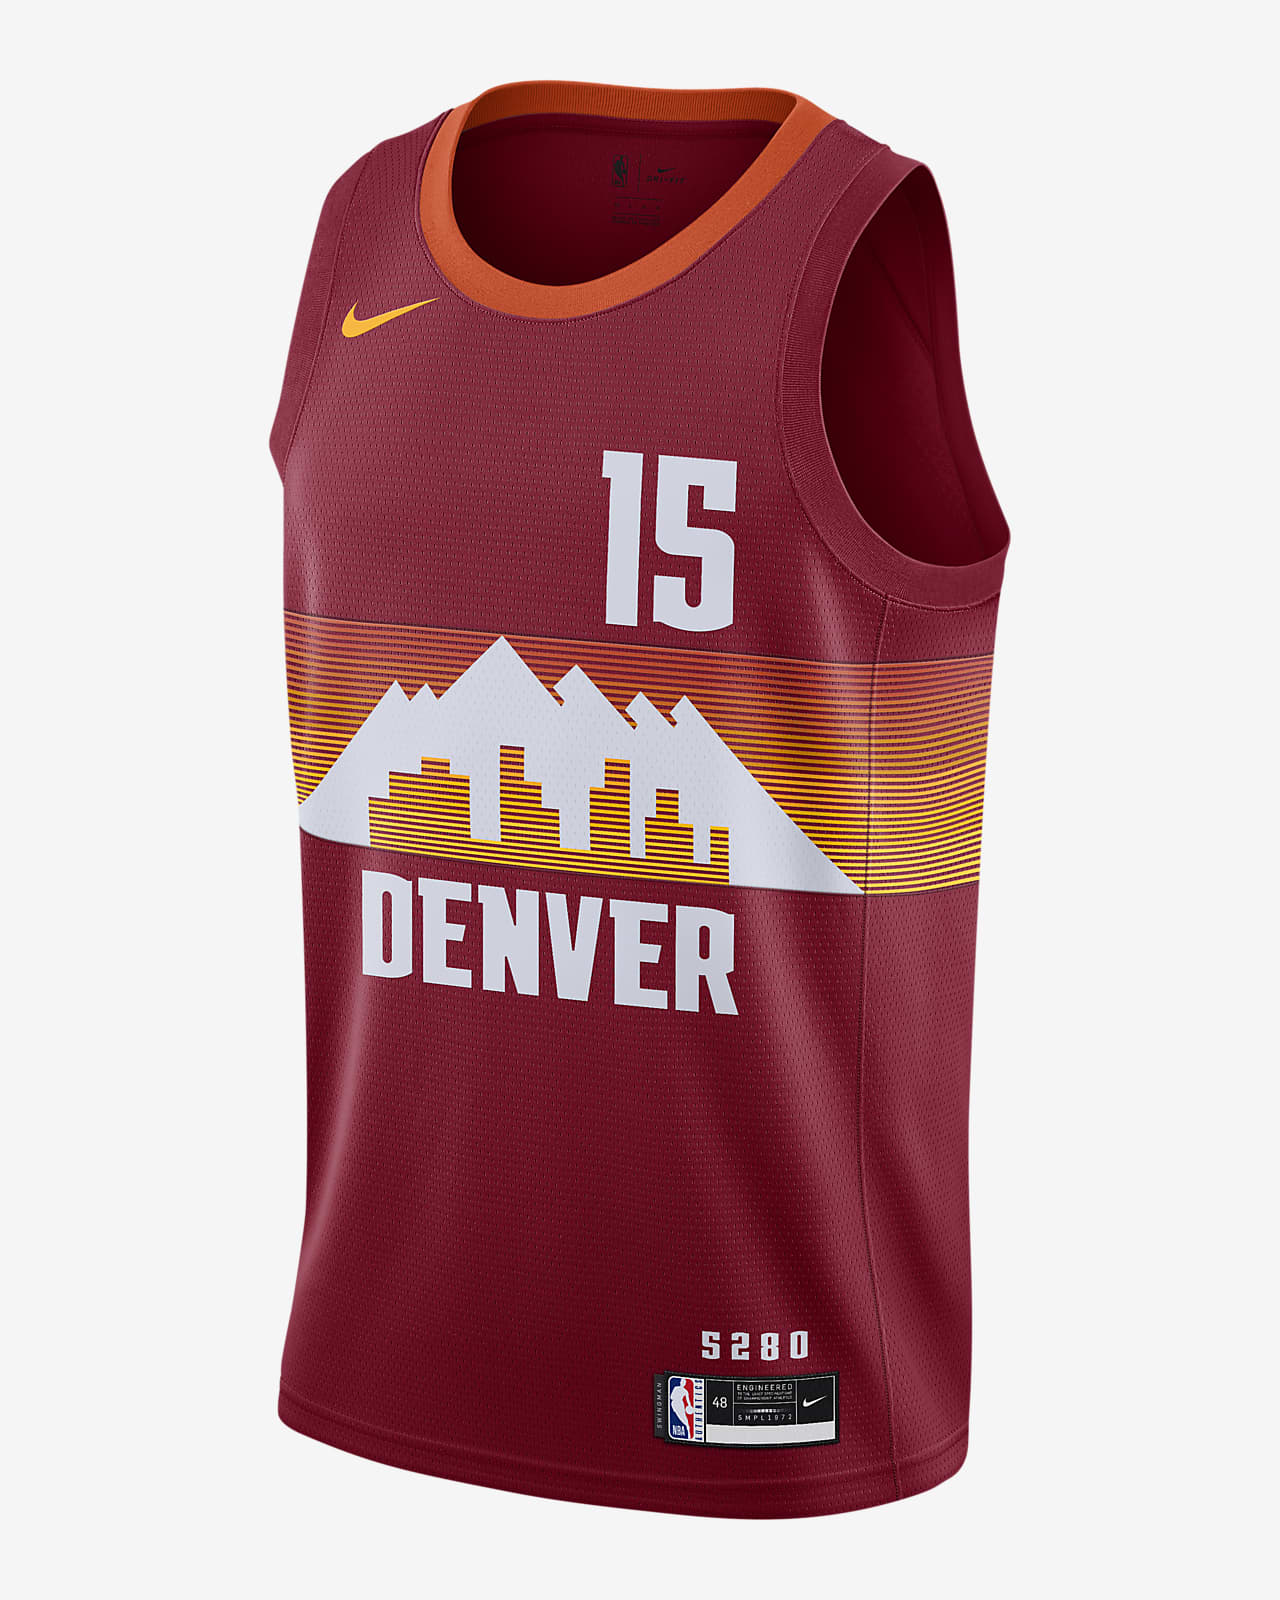 Denver Nuggets City Edition Nike NBA Swingman Jersey